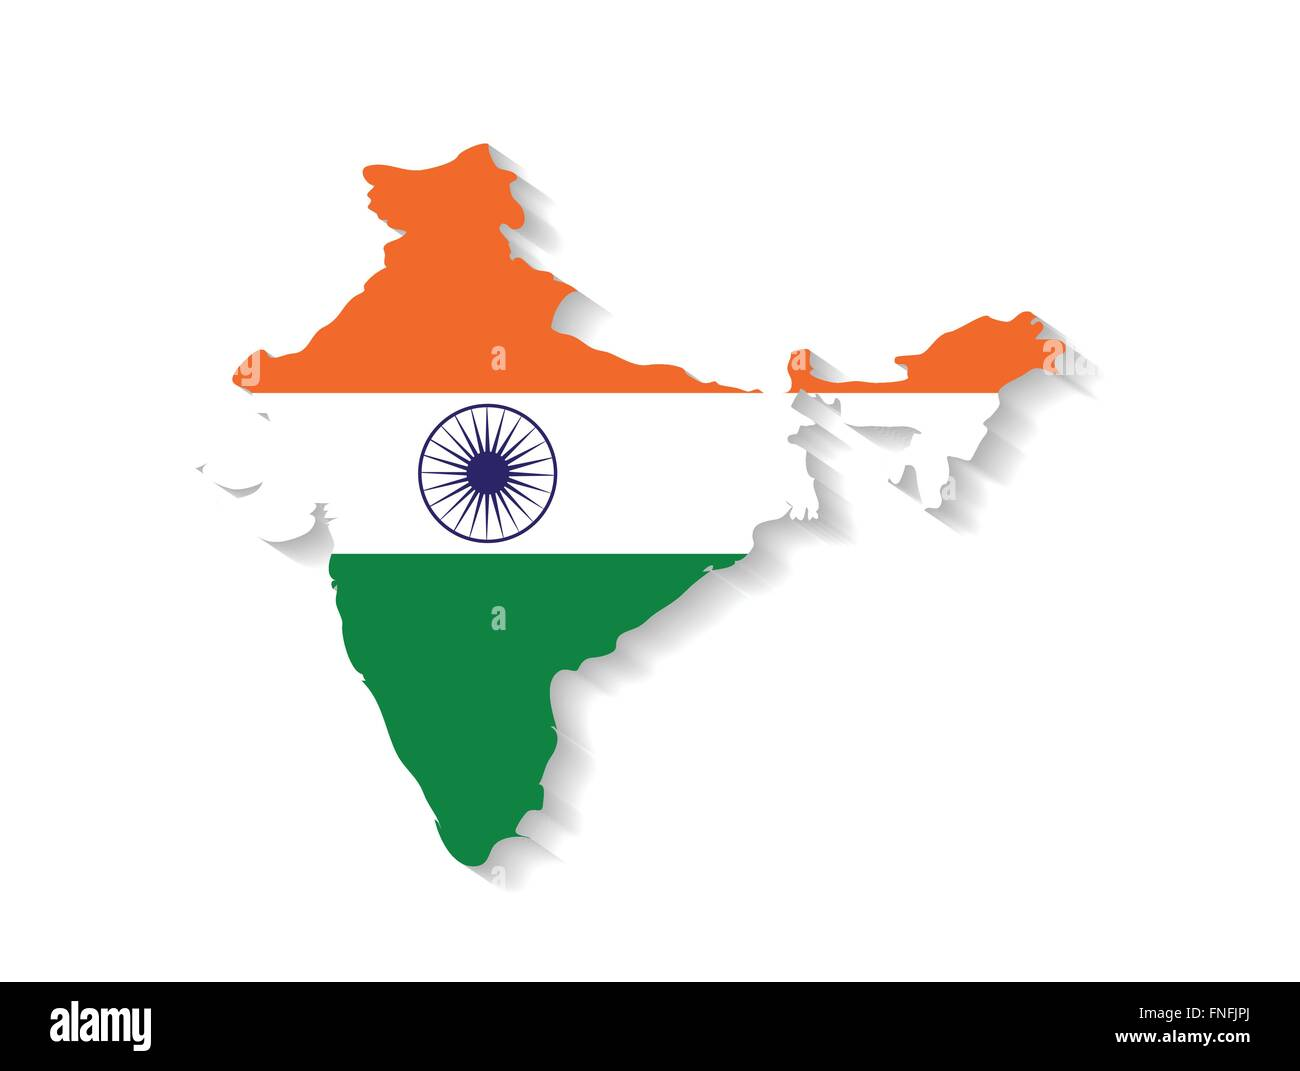 India country map with flag and shadow effect Stock Vector Art ... on india neighborhood map, gauhati india map, india uttarakhand rishikesh, india physical and political map, green india map, hindu kush mountains map, india state map, united states of america, rural india map, world map, south asia map, india map with bodies of water, india map recent, india continent map, taj mahal india location on map, india russia map, india hampi map, india physical map of rivers, india animal symbol, india khyber pass location, sri lanka, export by countries map,